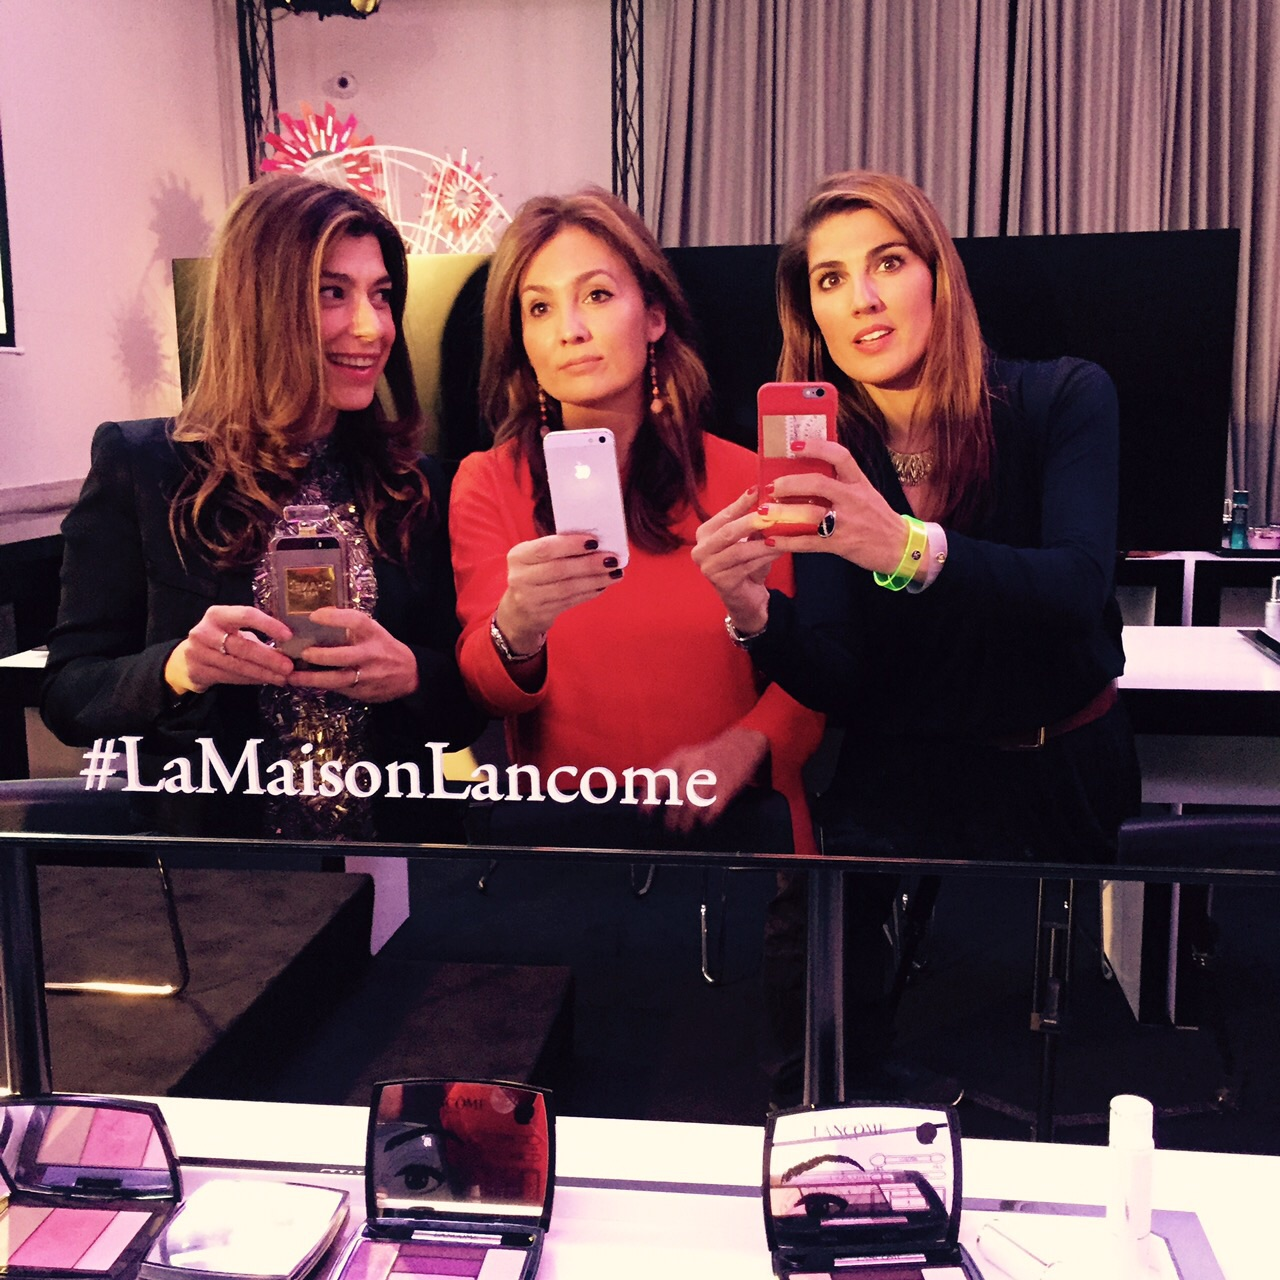 maison lancome 2 miss and chic